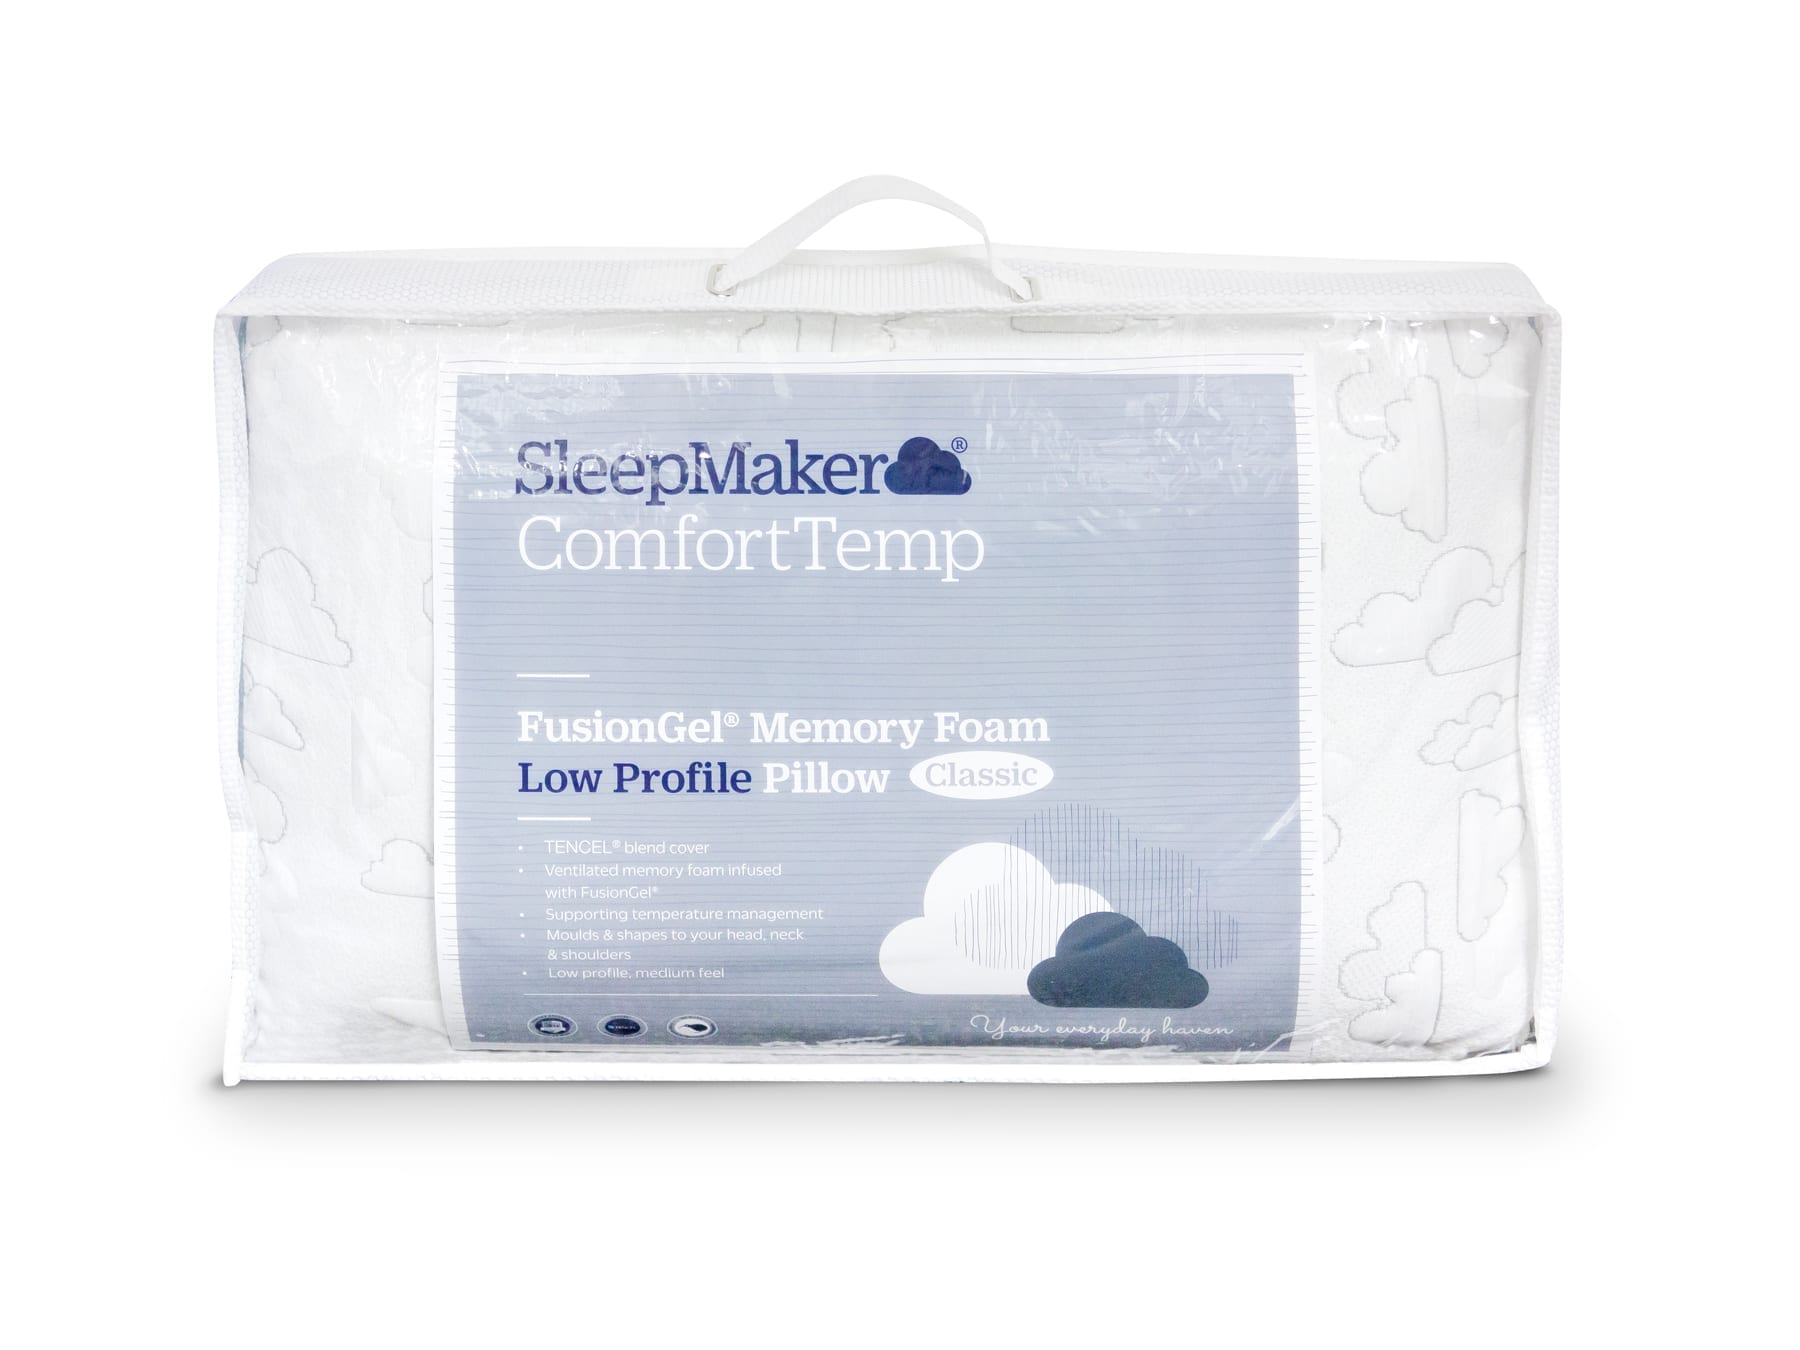 Sleepmaker Comfort Temp Fusion Gel Memory Foam Pillow Low Profile